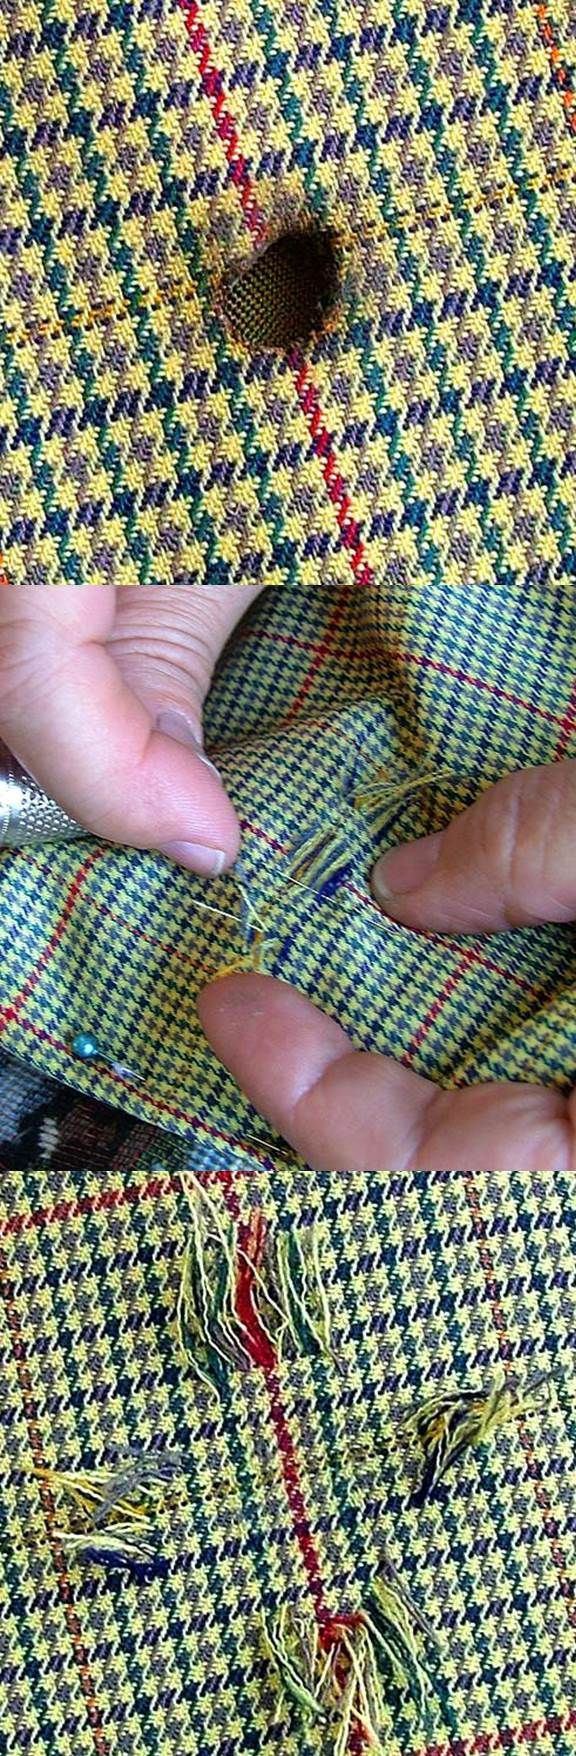 Sewing tutorial: Invisible mending. First of all, we must find threads identical to the original. Most of the time, we pick it from the lining. A few technical secrets will allow us to recreate it if there isn't enough. #sewing